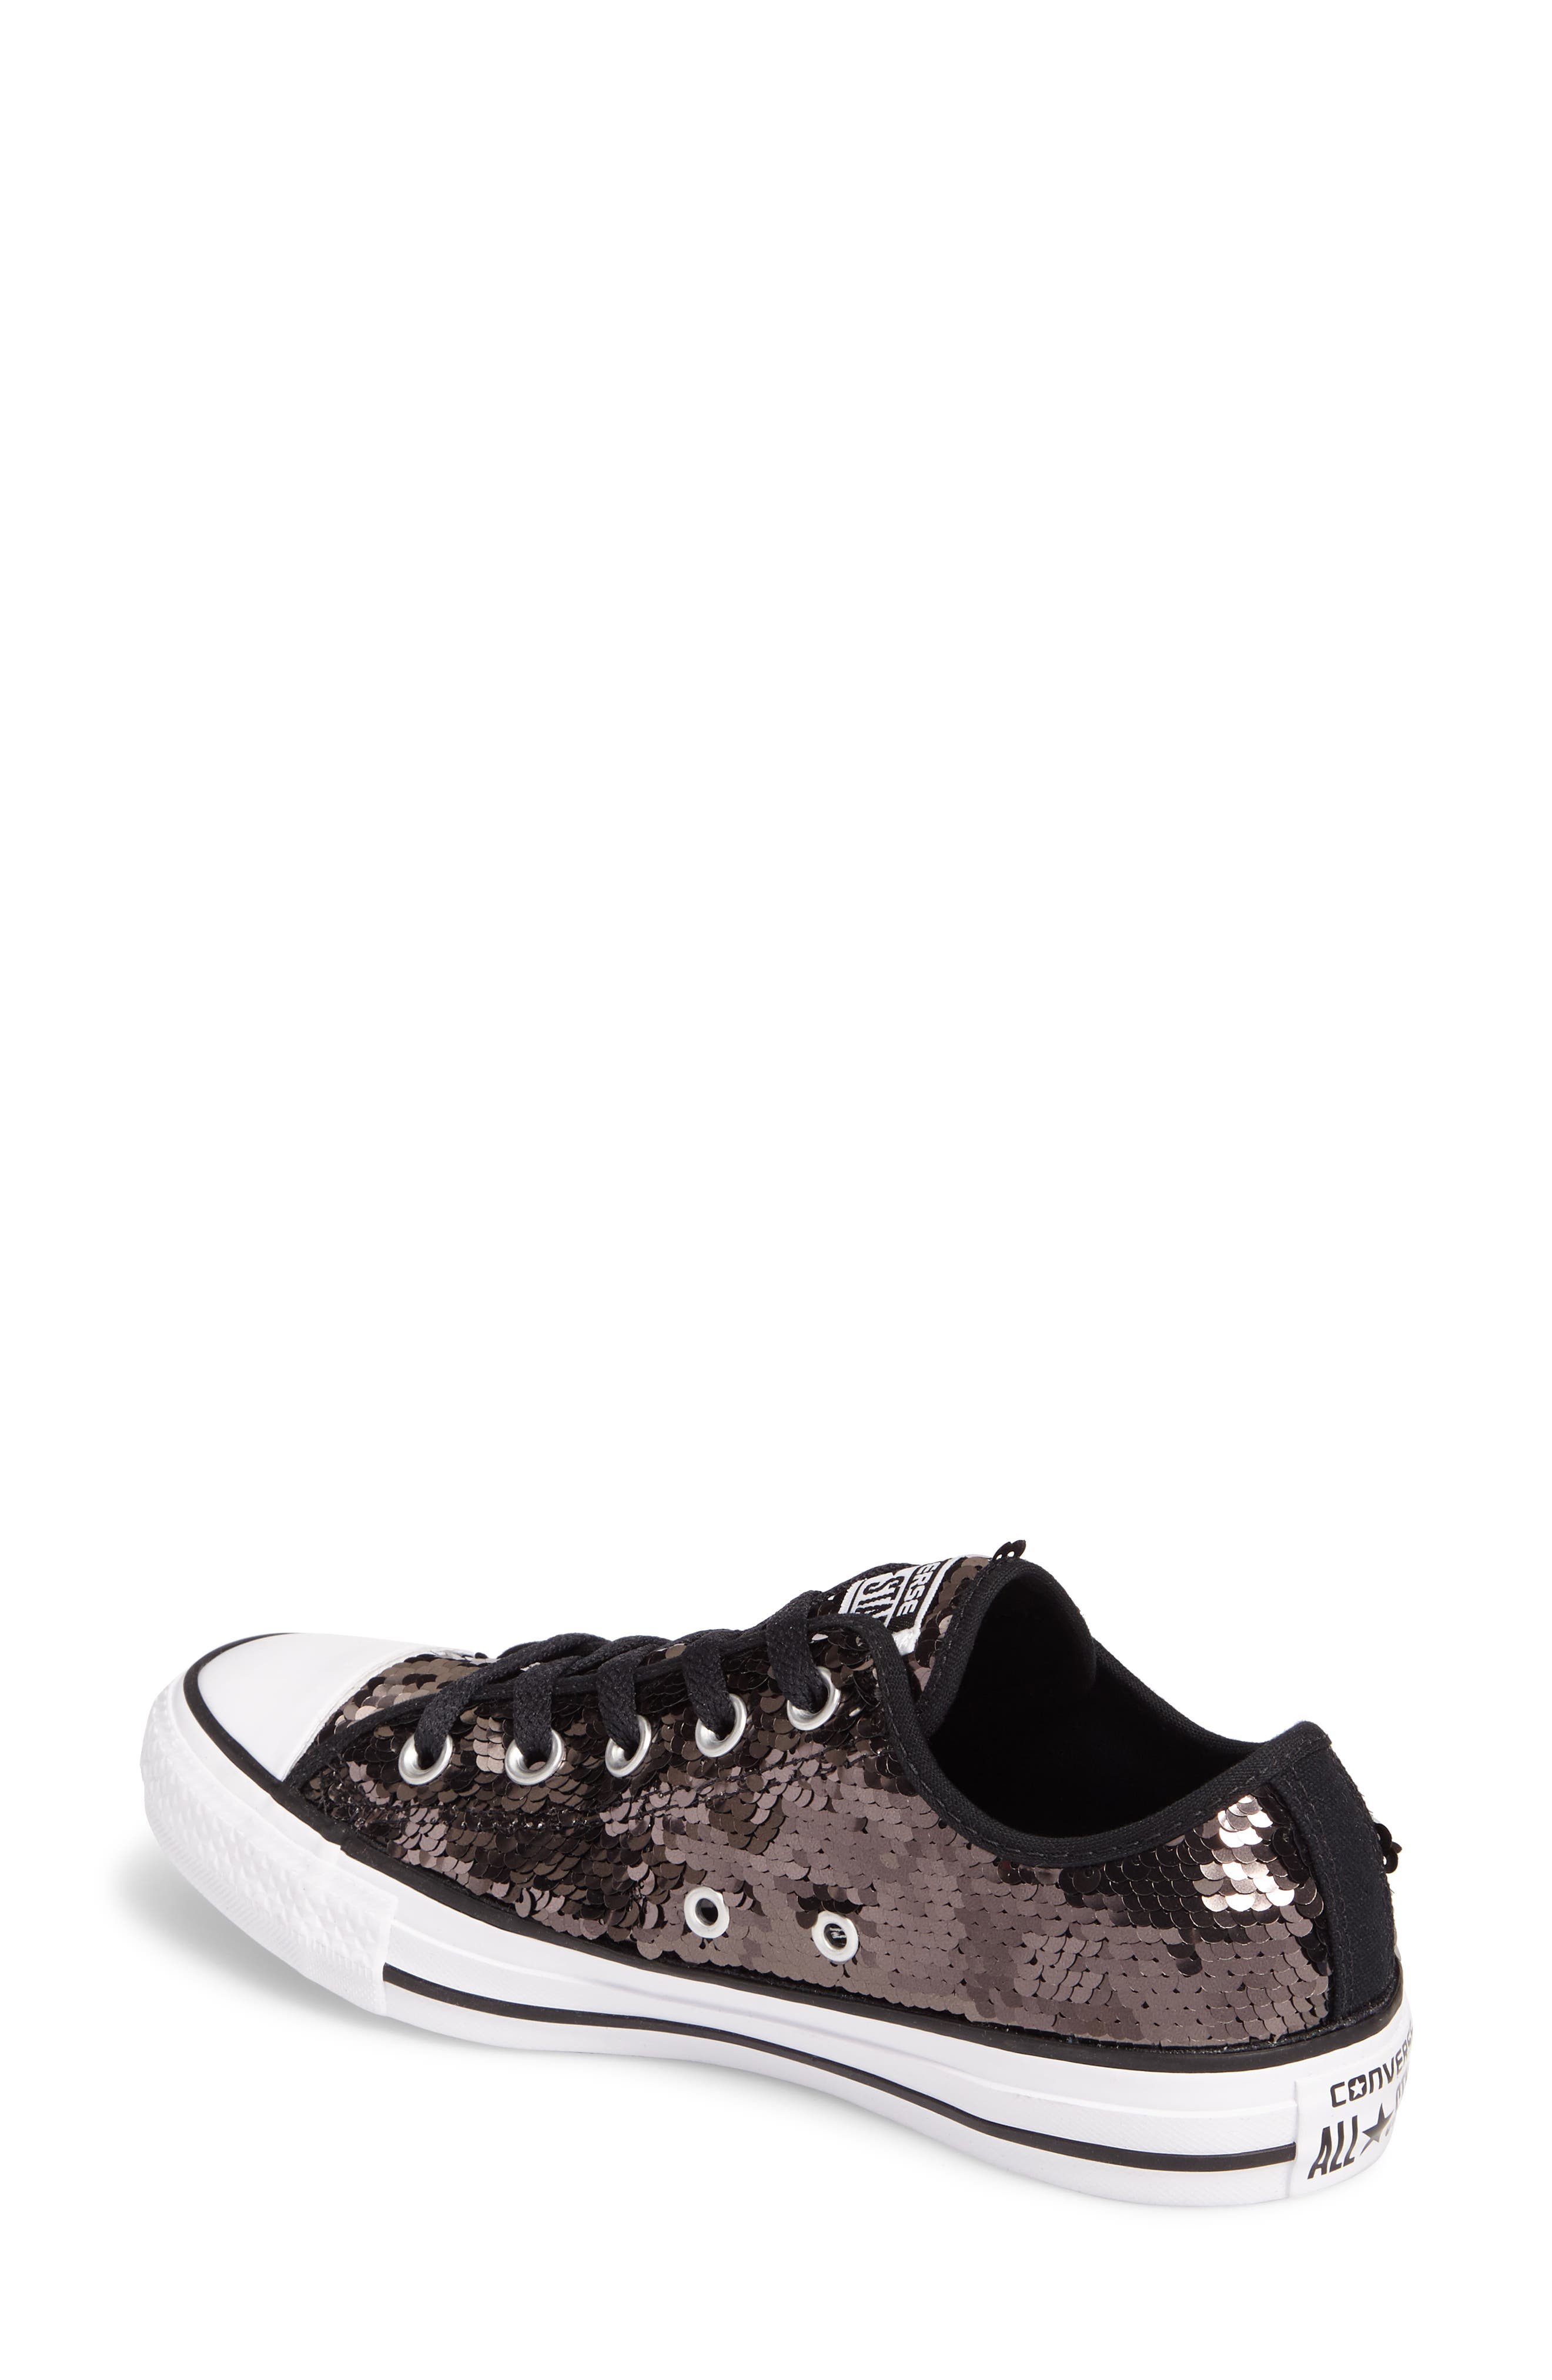 Chuck Taylor<sup>®</sup> All Star<sup>®</sup> Sequin Low Top Sneaker,                             Alternate thumbnail 3, color,